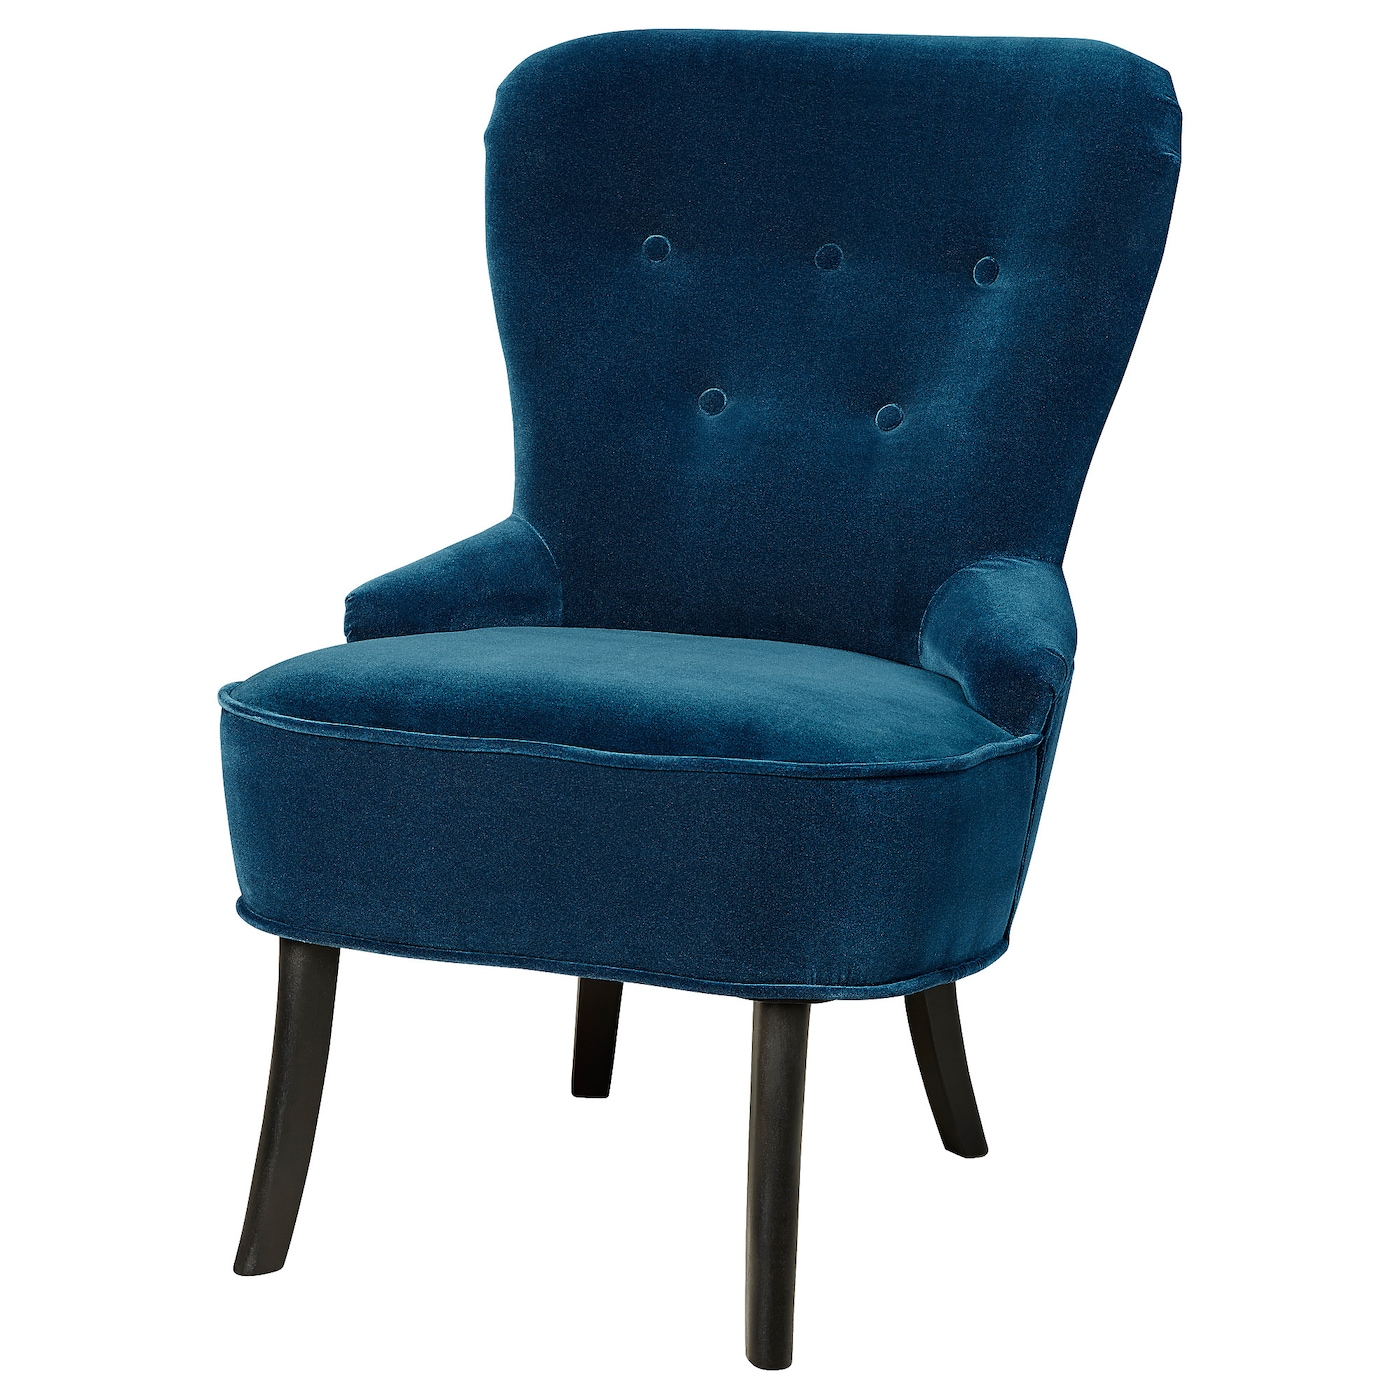 IKEA REMSTA fauteuil Fluweel dat geweven is van viscose en polyester is slijtvast.